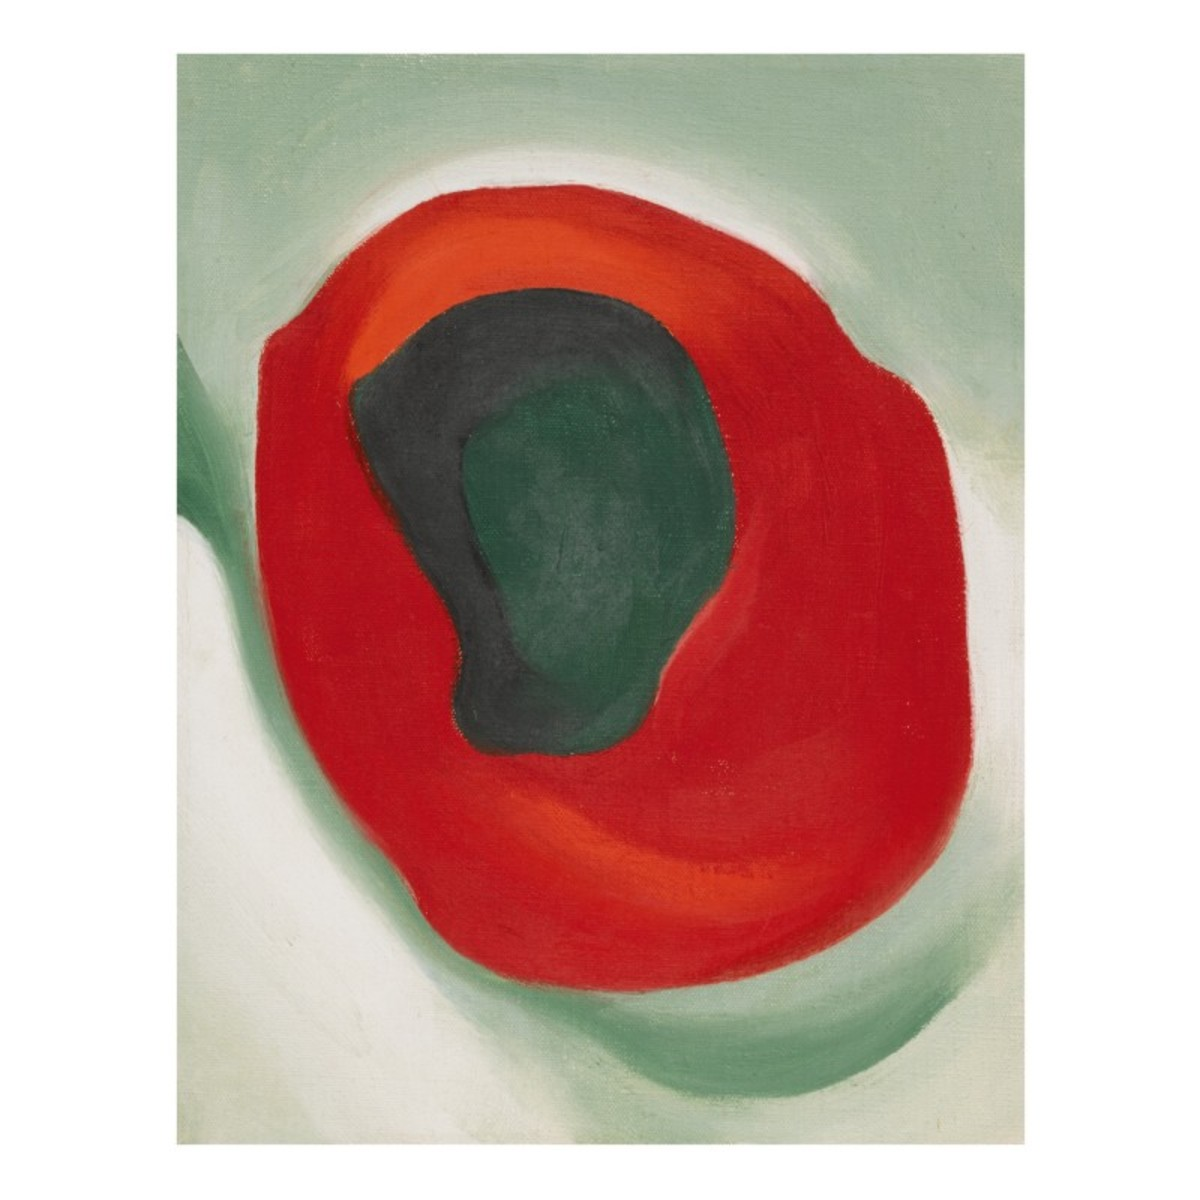 Untitled (Alligator Pear in Red Dish), painted circa 1923, sold for $740,000.